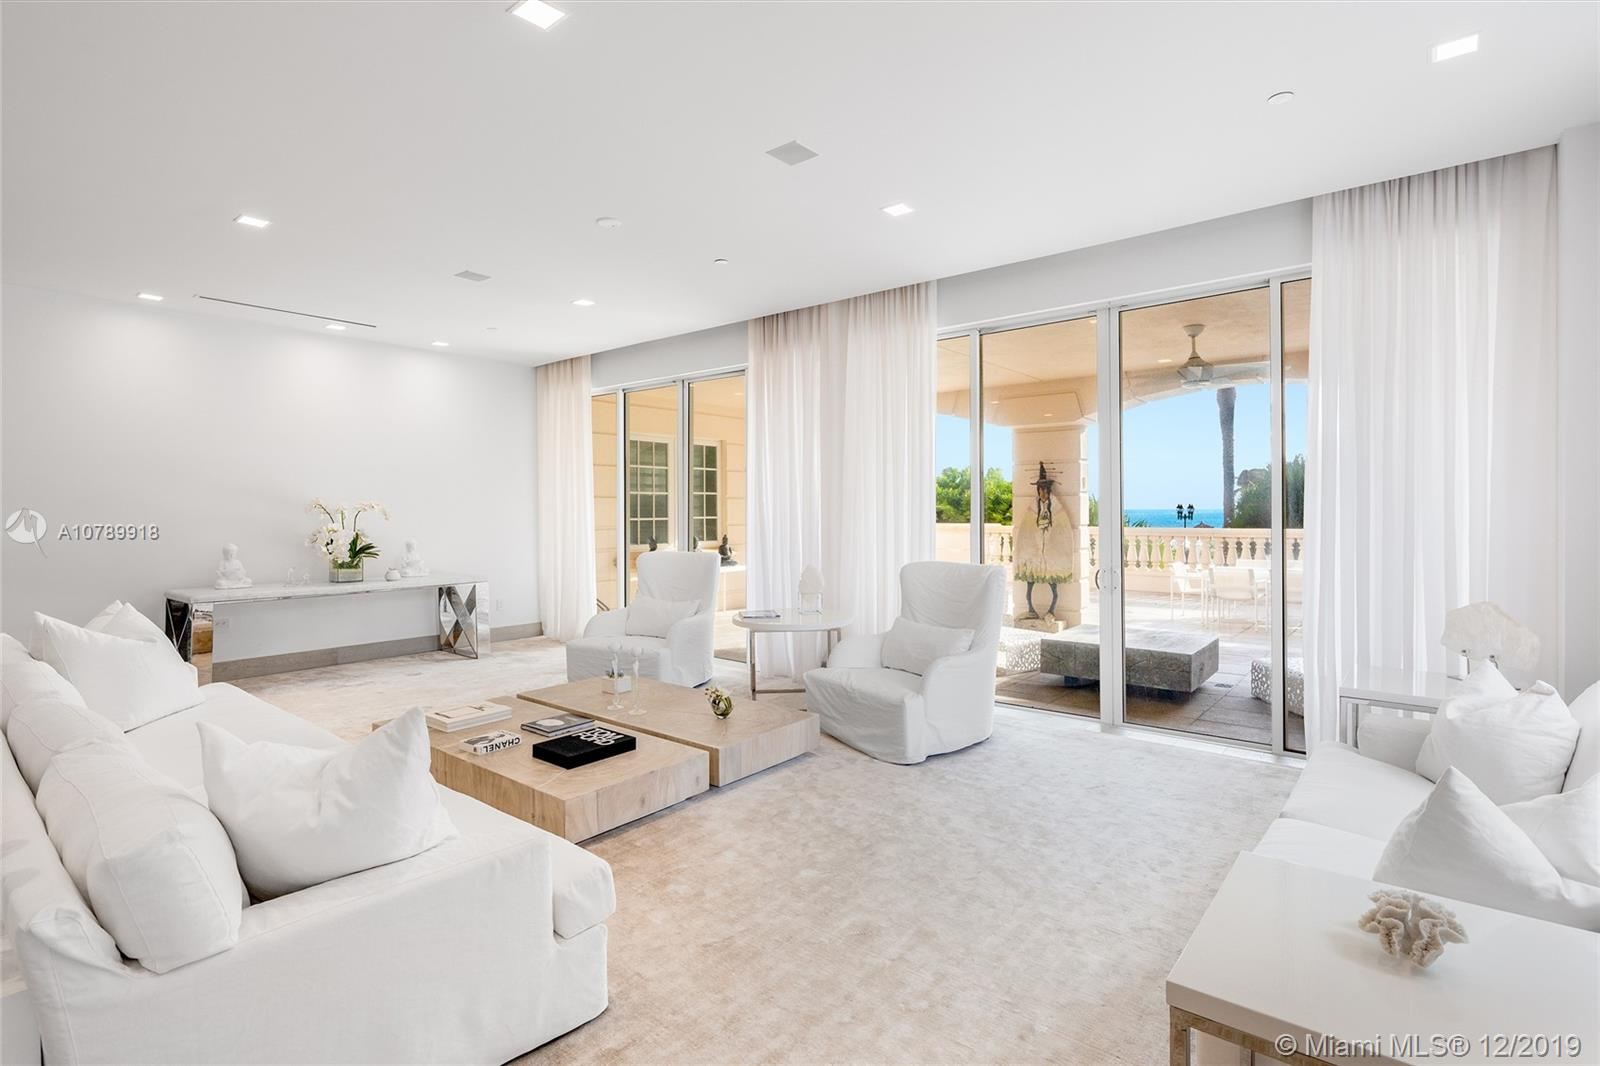 7415 Fisher Island Dr, Unit #7415 Luxury Real Estate